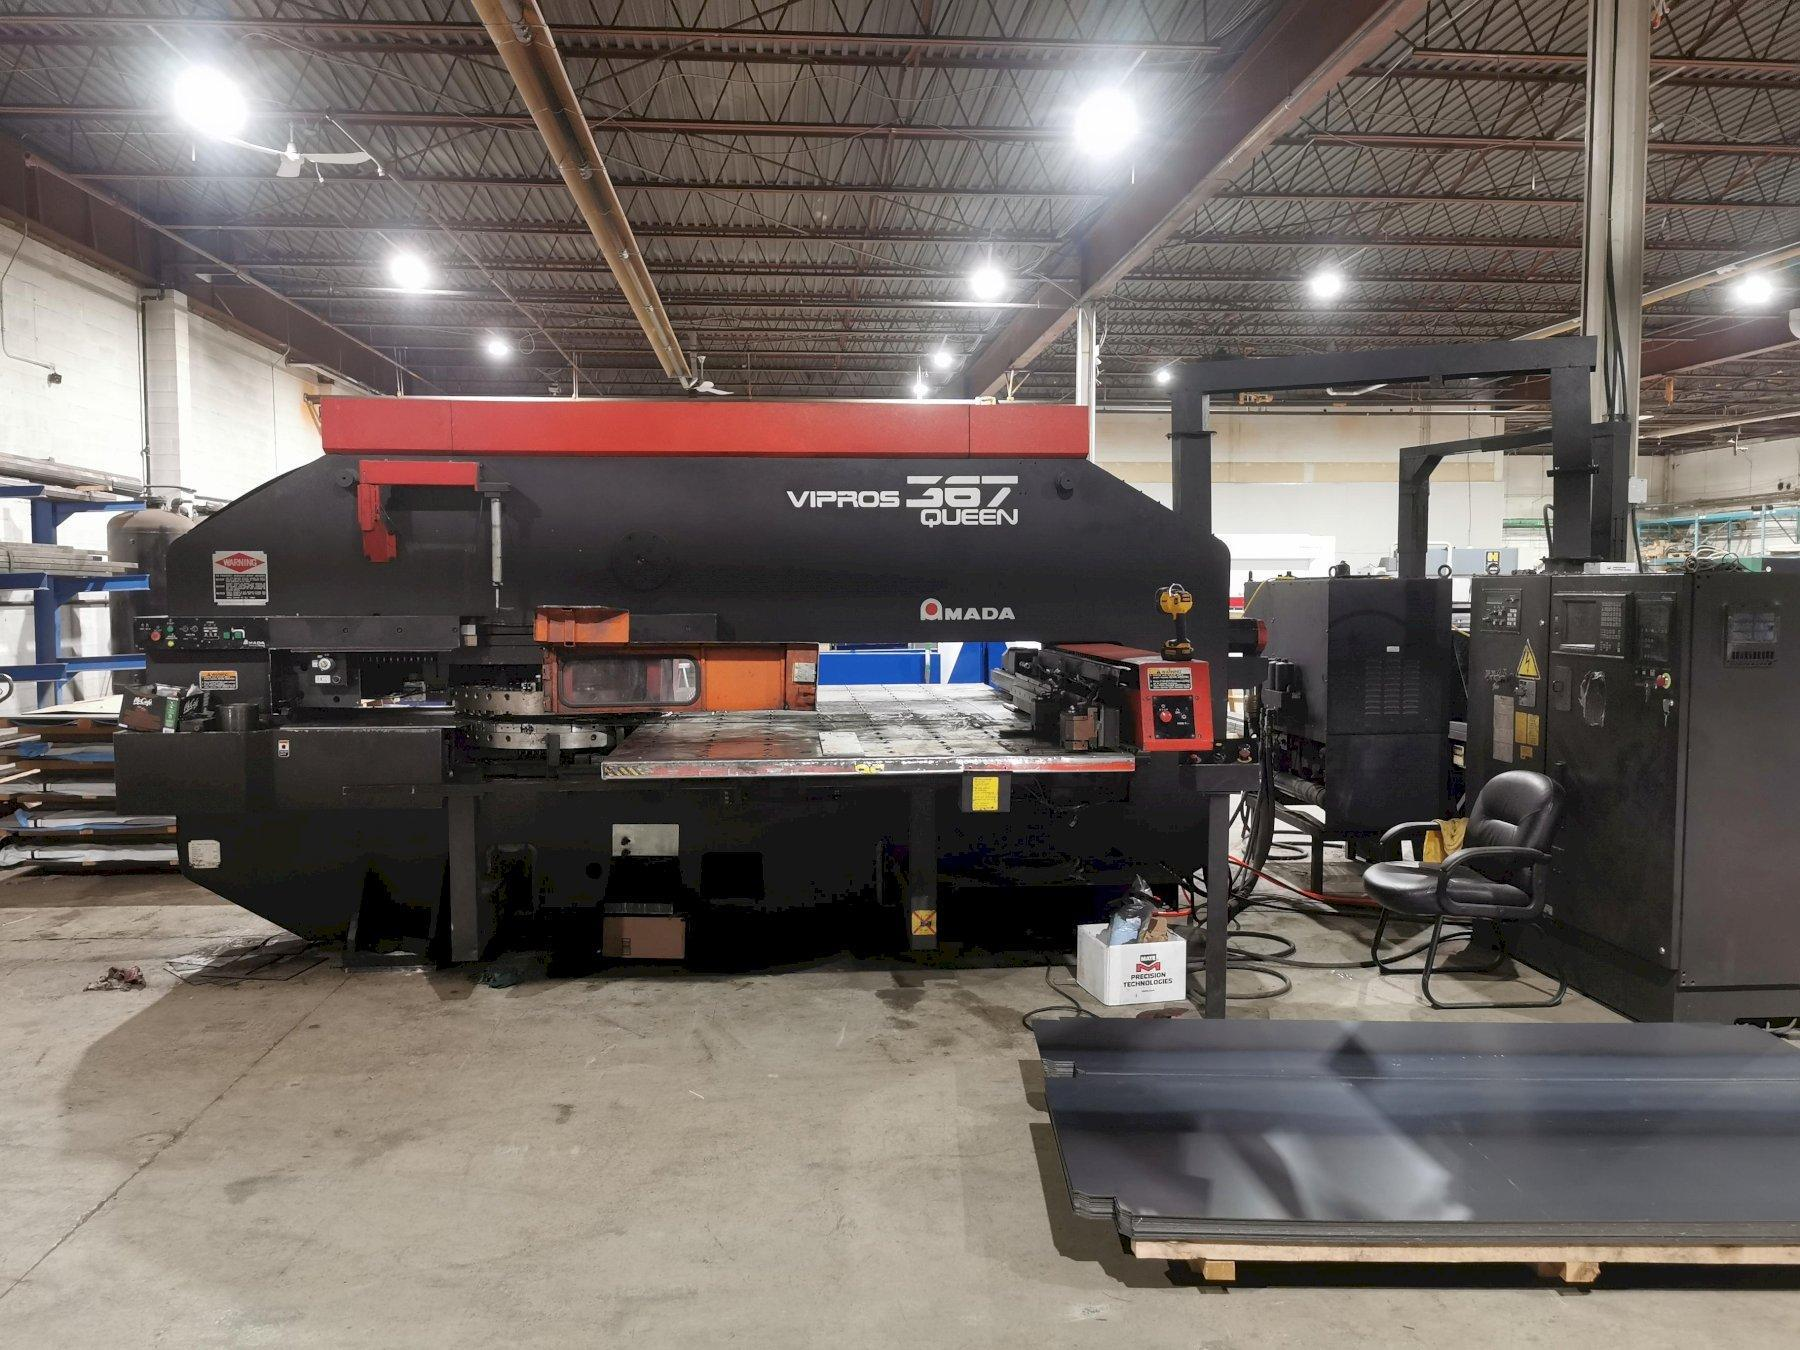 Amada Vipros 367 Queen CNC Turret Punch Press